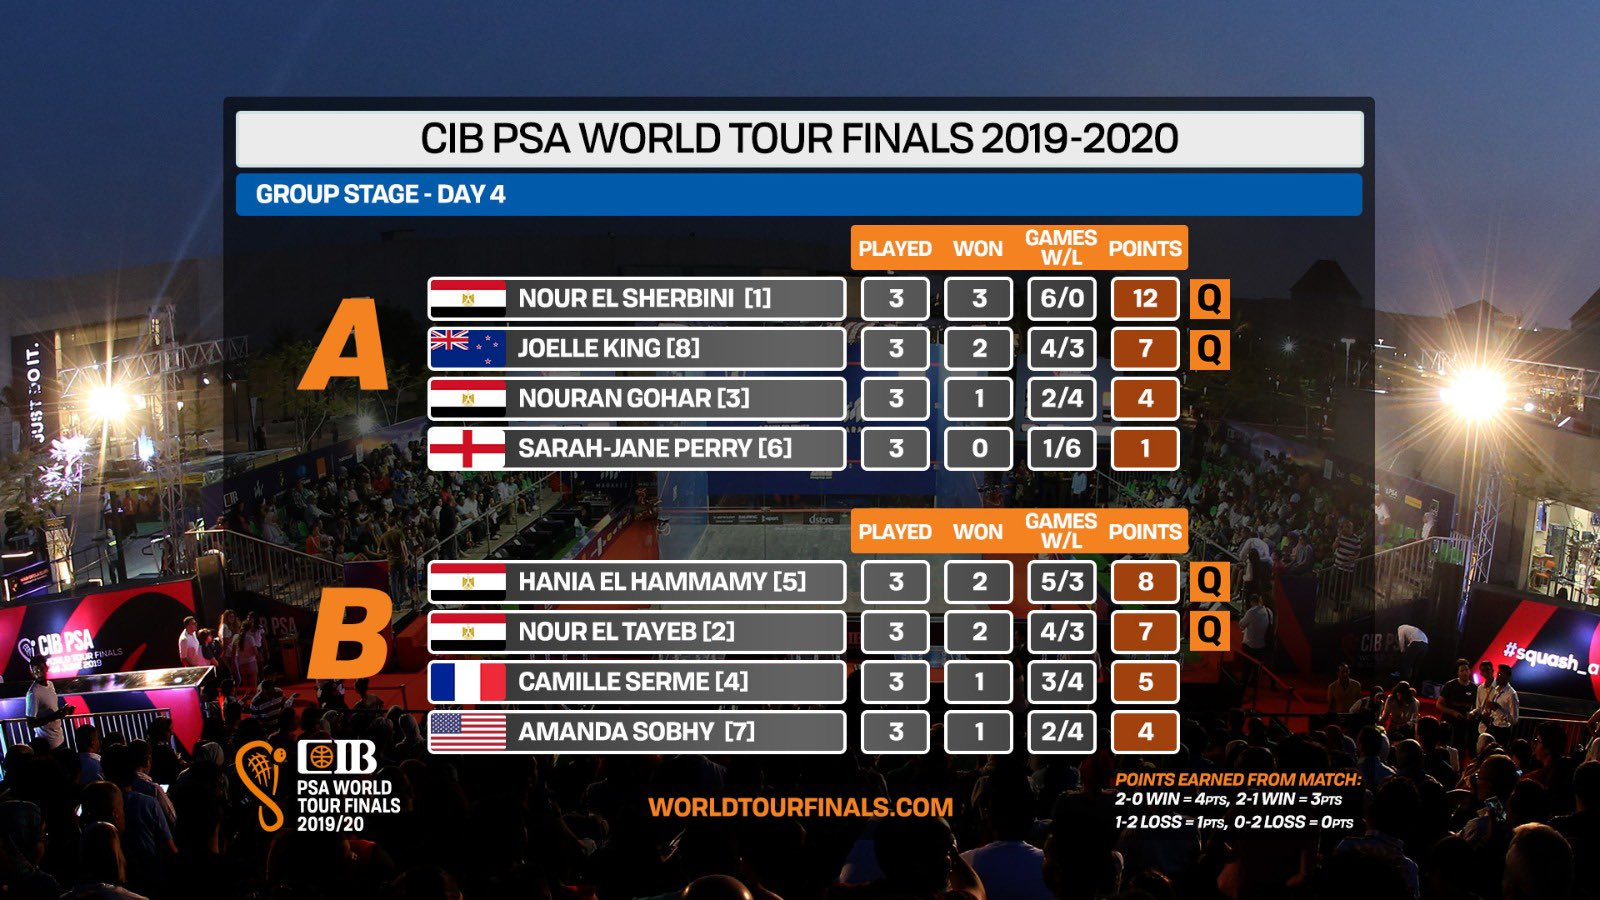 Final group standings for the women at the PSA World Tour Finals